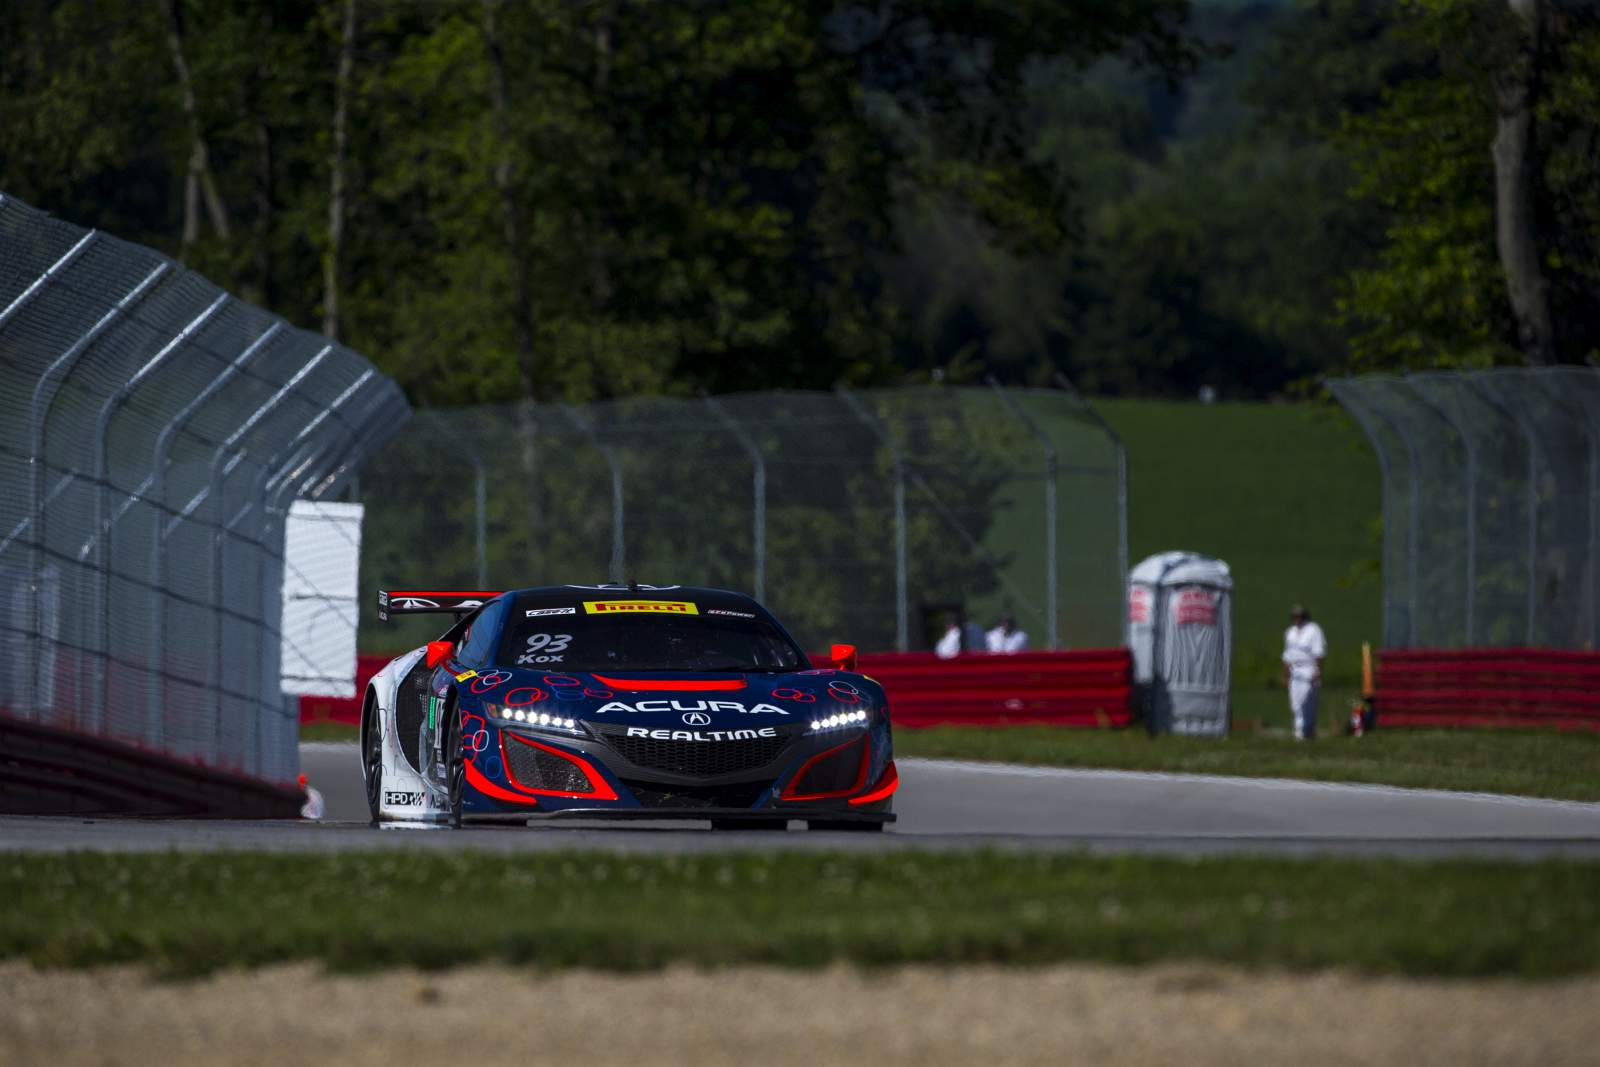 peter-kox-realtime-racing-pirelli-world-challenge-mid-ohio-55